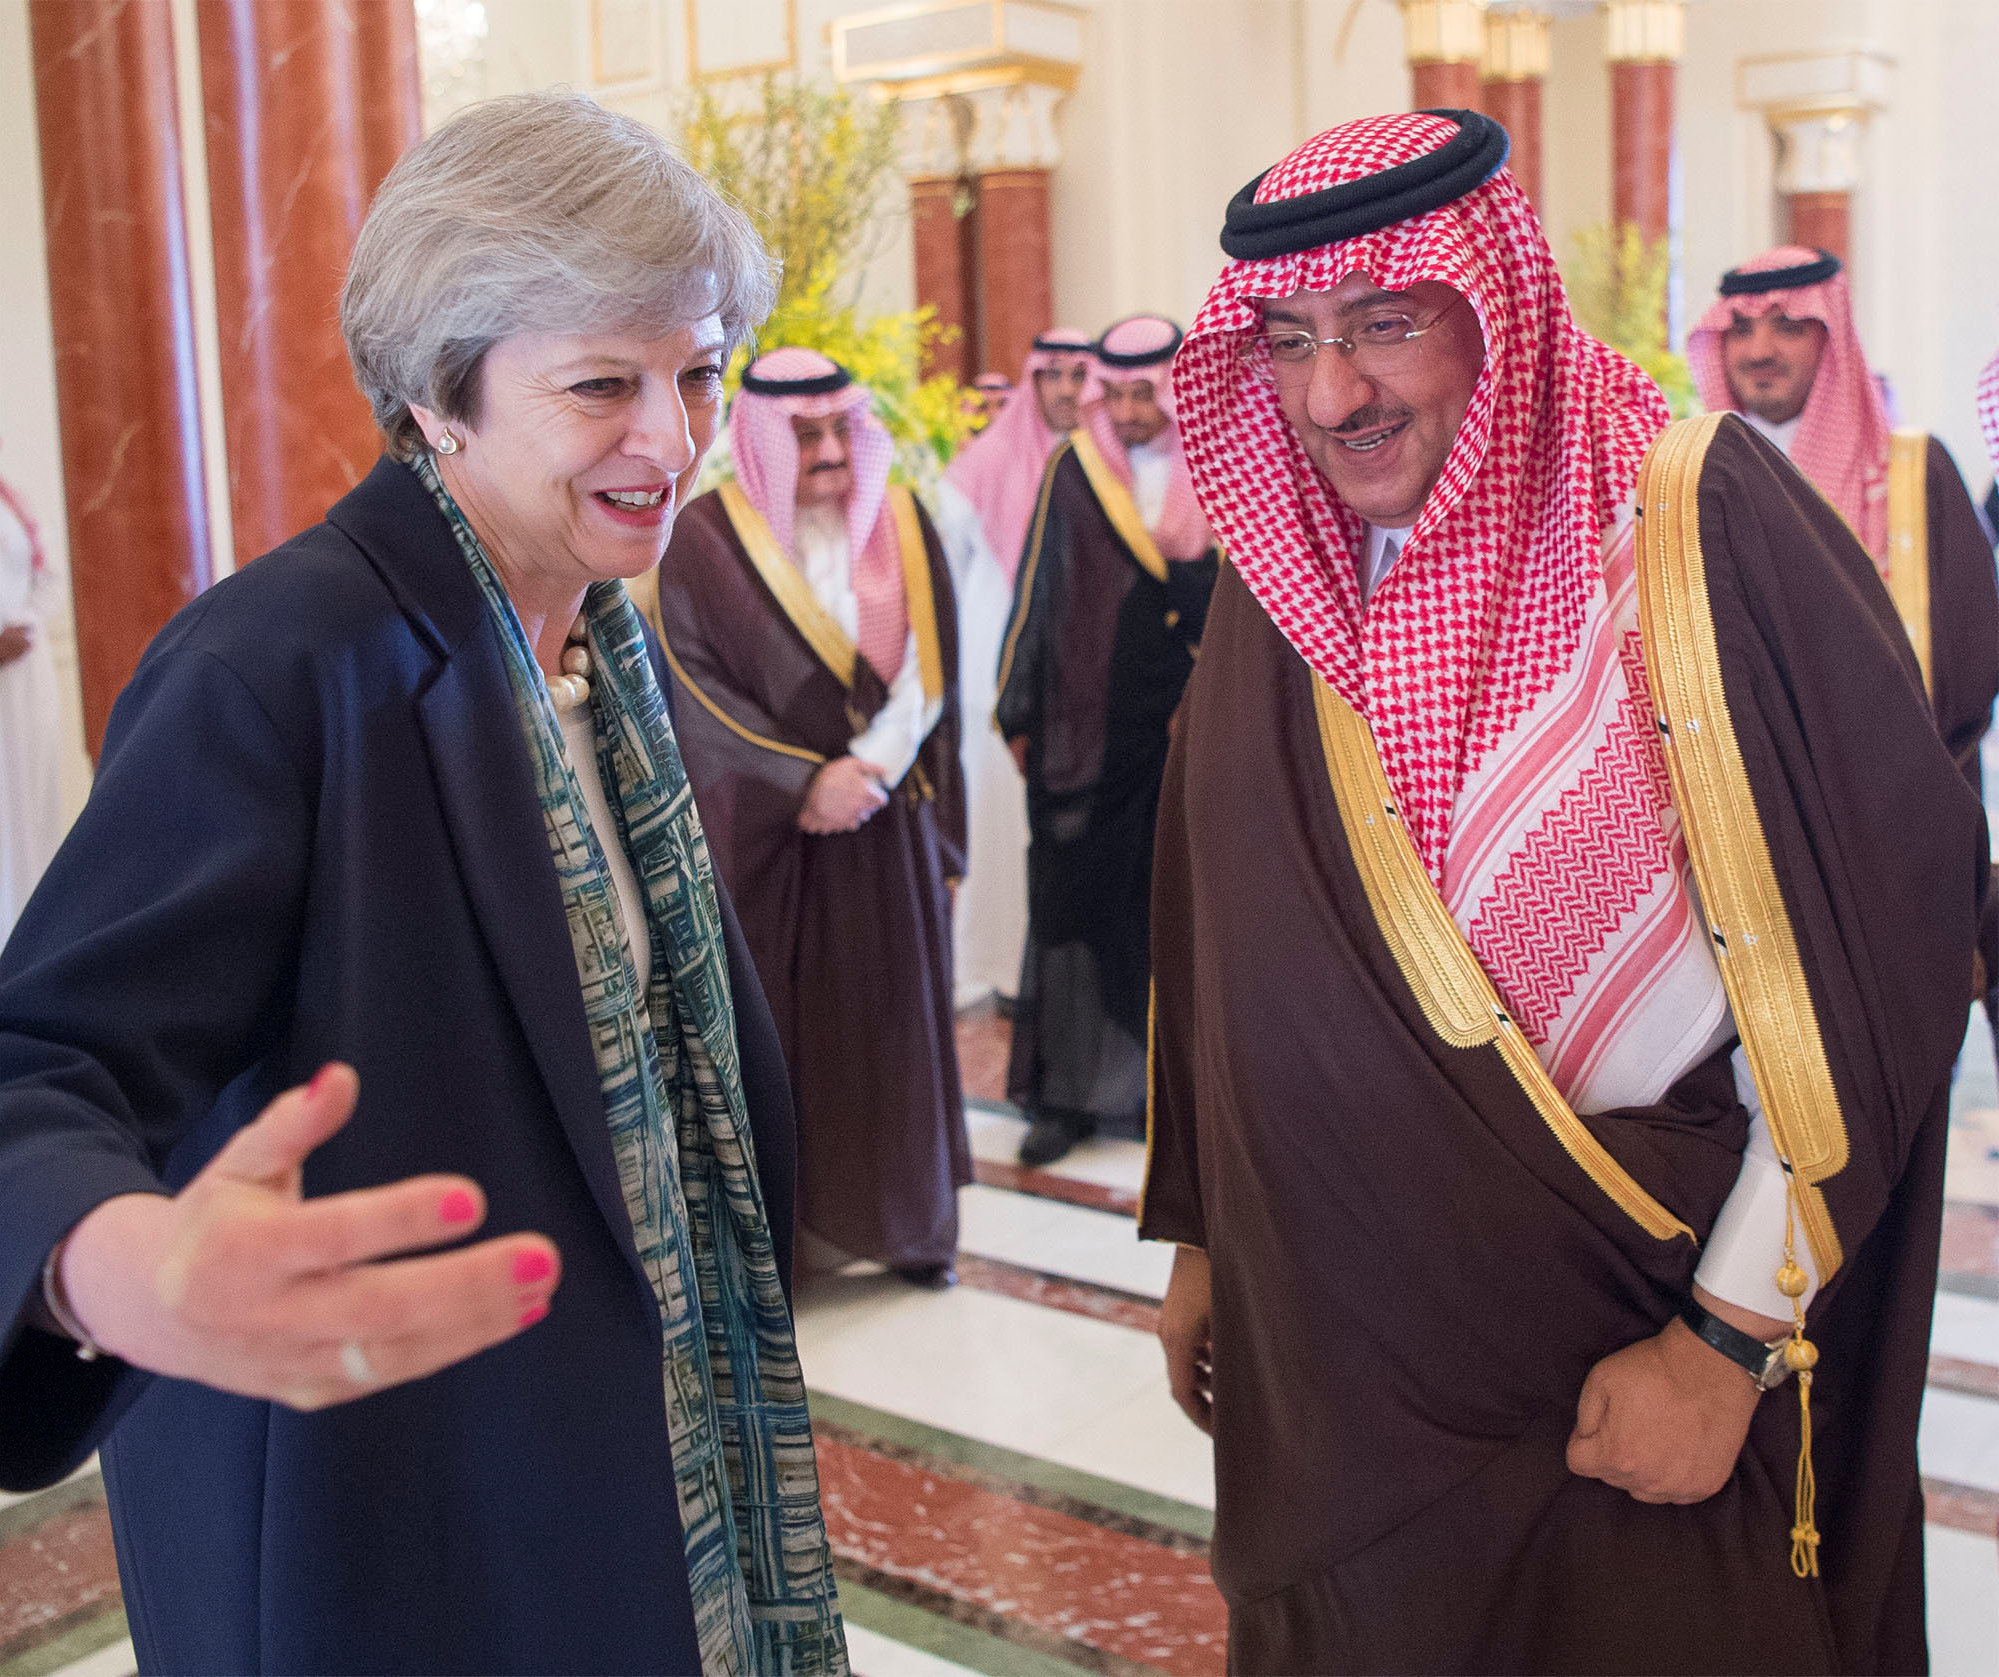 Saudi Arabian Crown Prince Muhammad bin Nayef welcomes British Prime Minister Theresa May in Riyadh. (Bandar Algaloud/Courtesy of Saudi Royal Court/Handout via REUTERS)